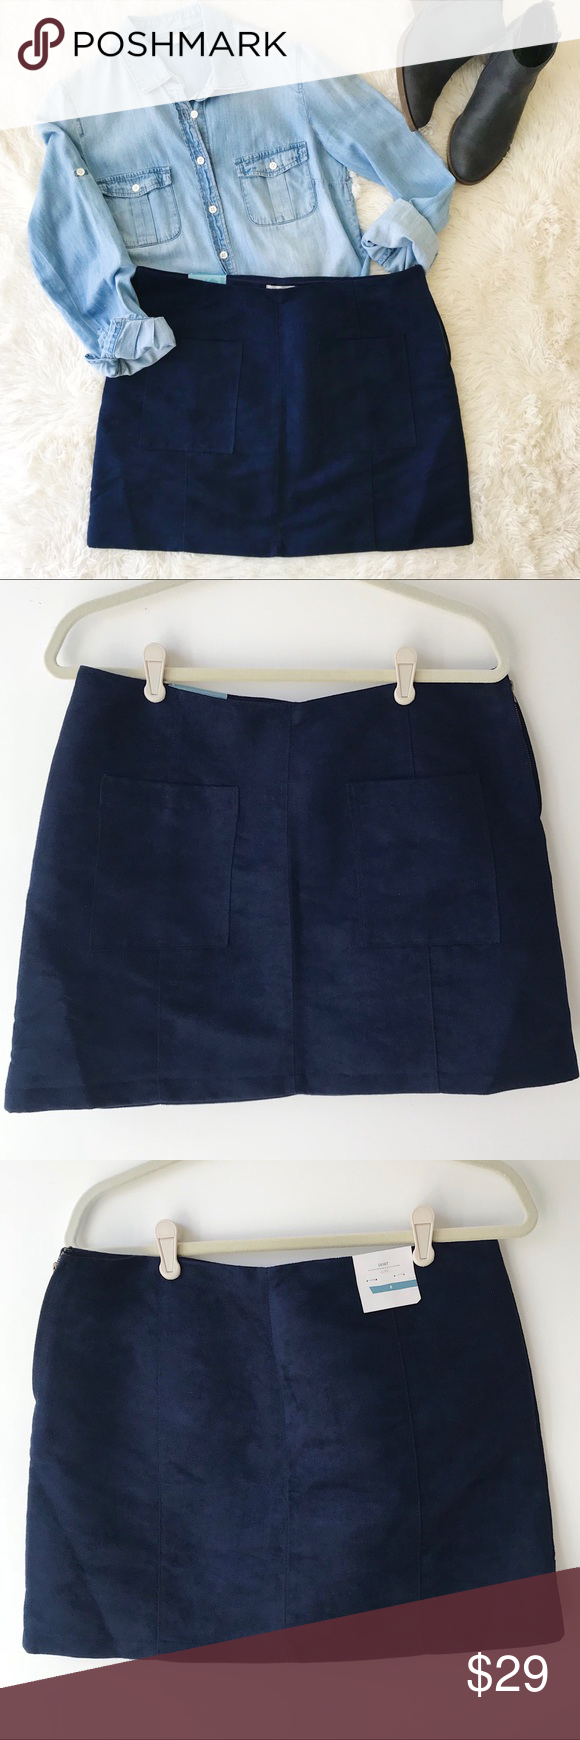 1658bbf37d5 Old Navy fuax suede mini skirt navy blue NWT Old Navy faux suede mini skirt  navy blue Size 8 Front patch pockets Side zip Fully lined Measurements ...